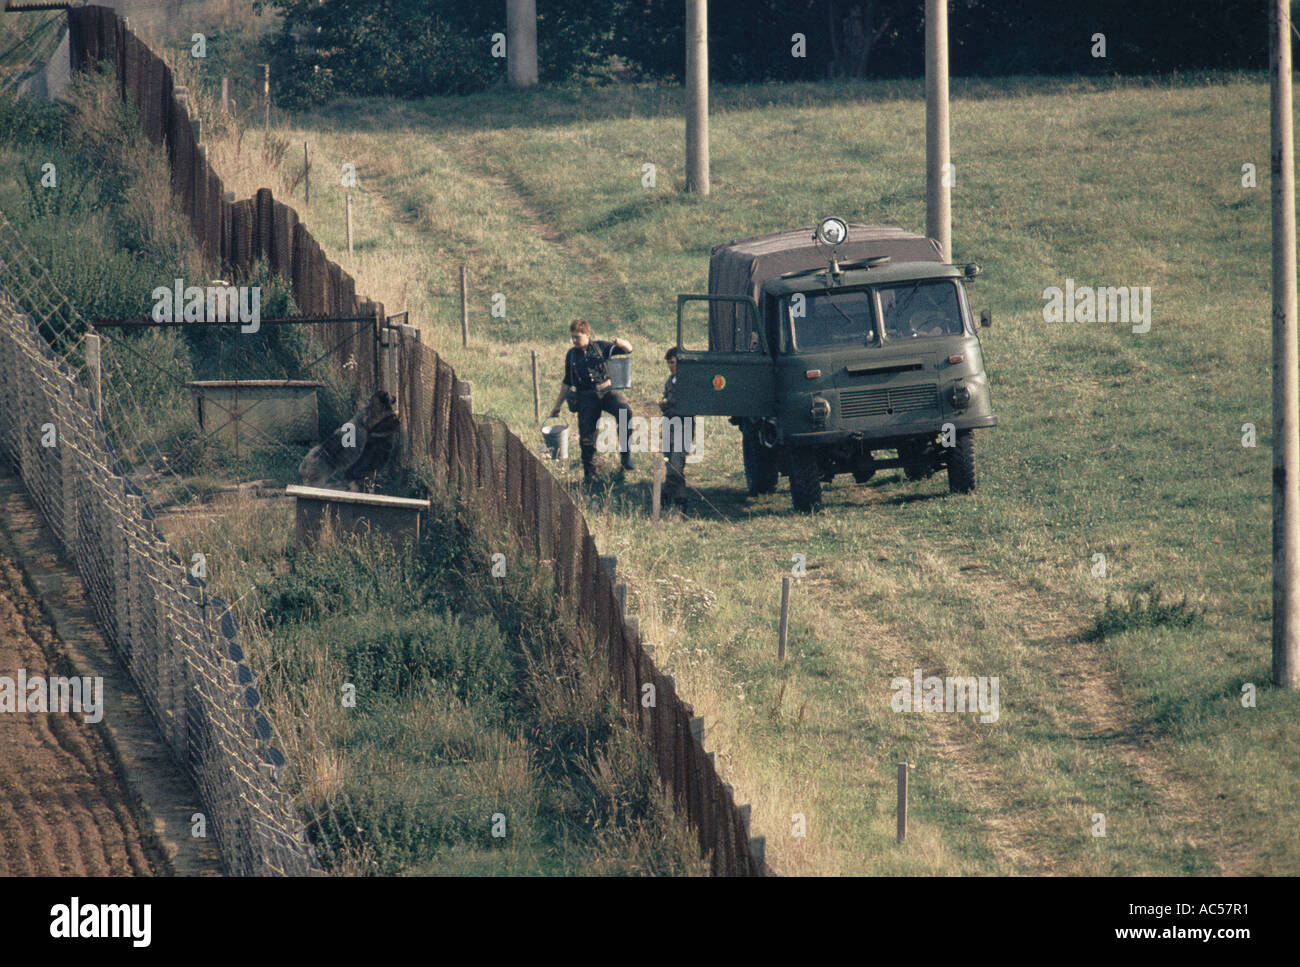 IRON CURTAIN EAST GERMAN BORDER GUARDS FEED DOGS THAT PATROL BETWEEN DOUBLE  FENCE 1989   Stock